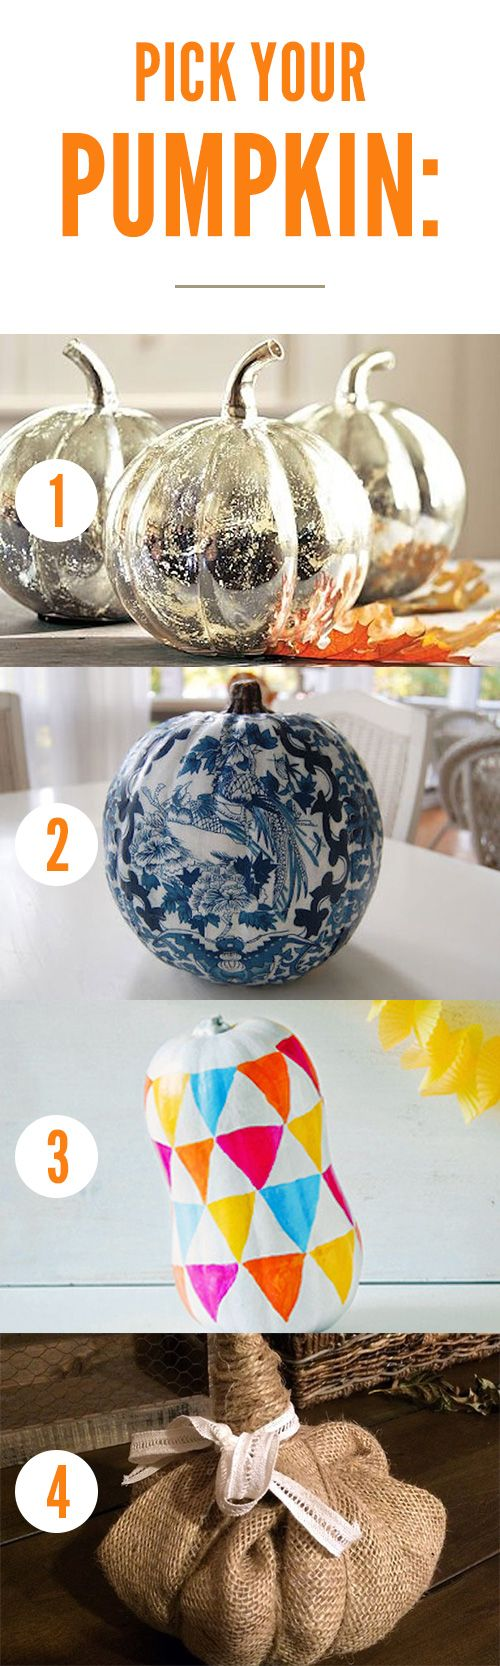 Pick Your Pumpkin and Get Tons of Halloween Decorating Ideas that Match Your Style